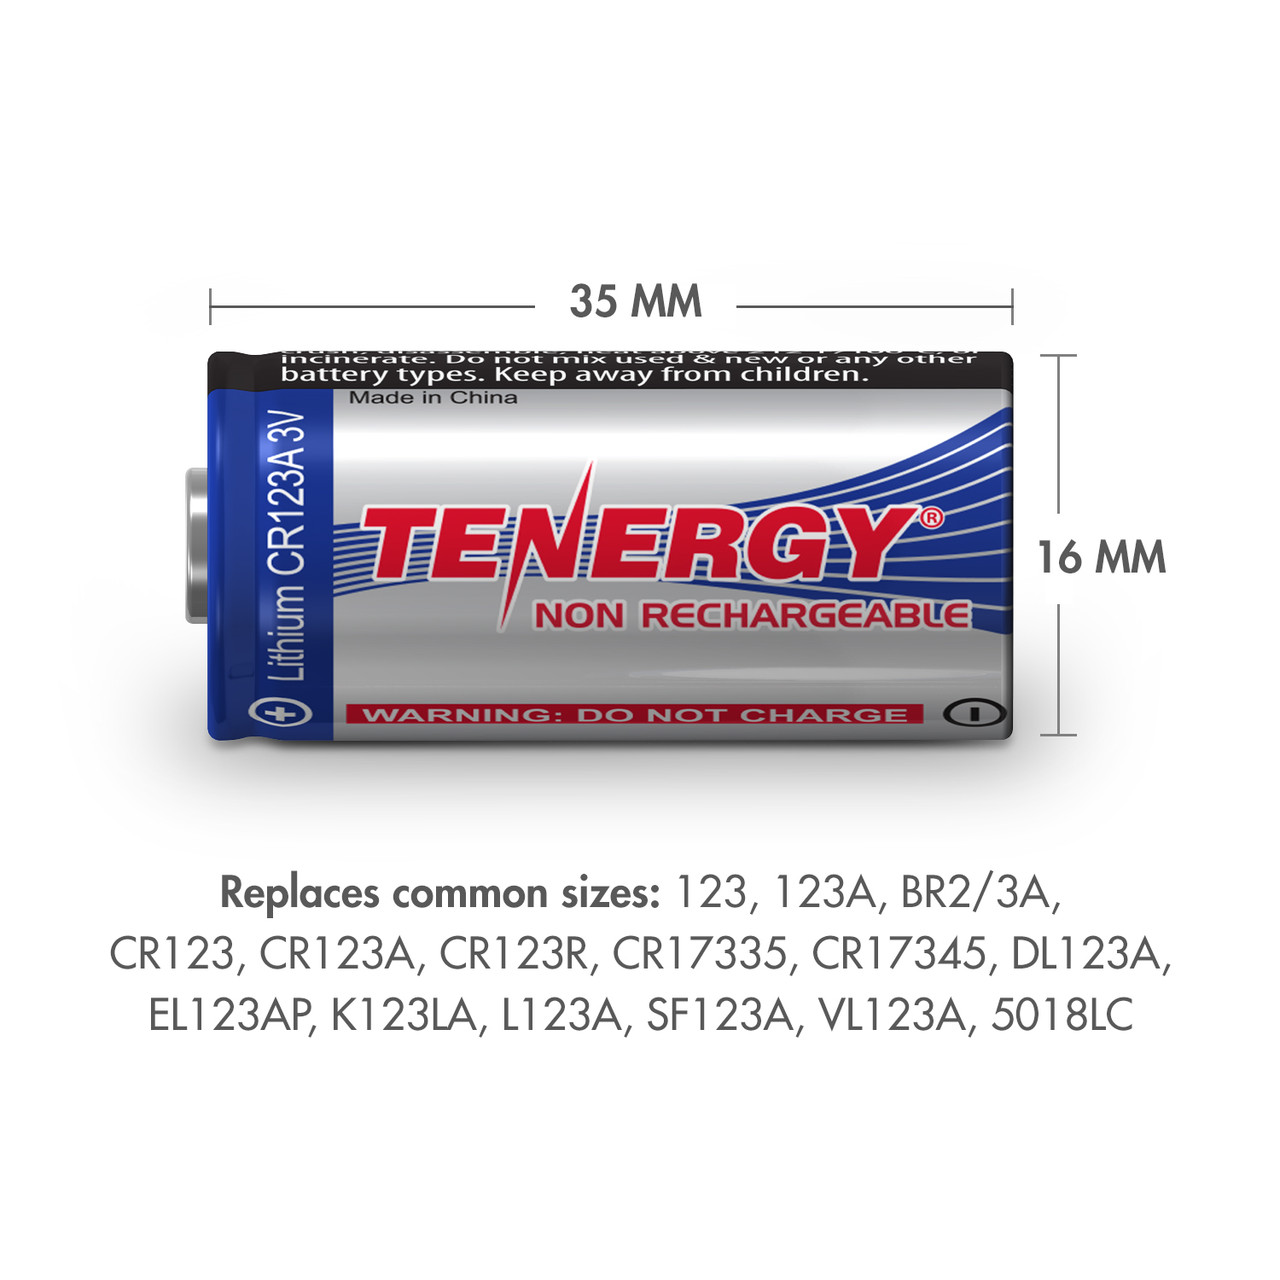 1 Pack, Tenergy CR123A Lithium Battery with PTC Protected - [Non-Rechargeable]